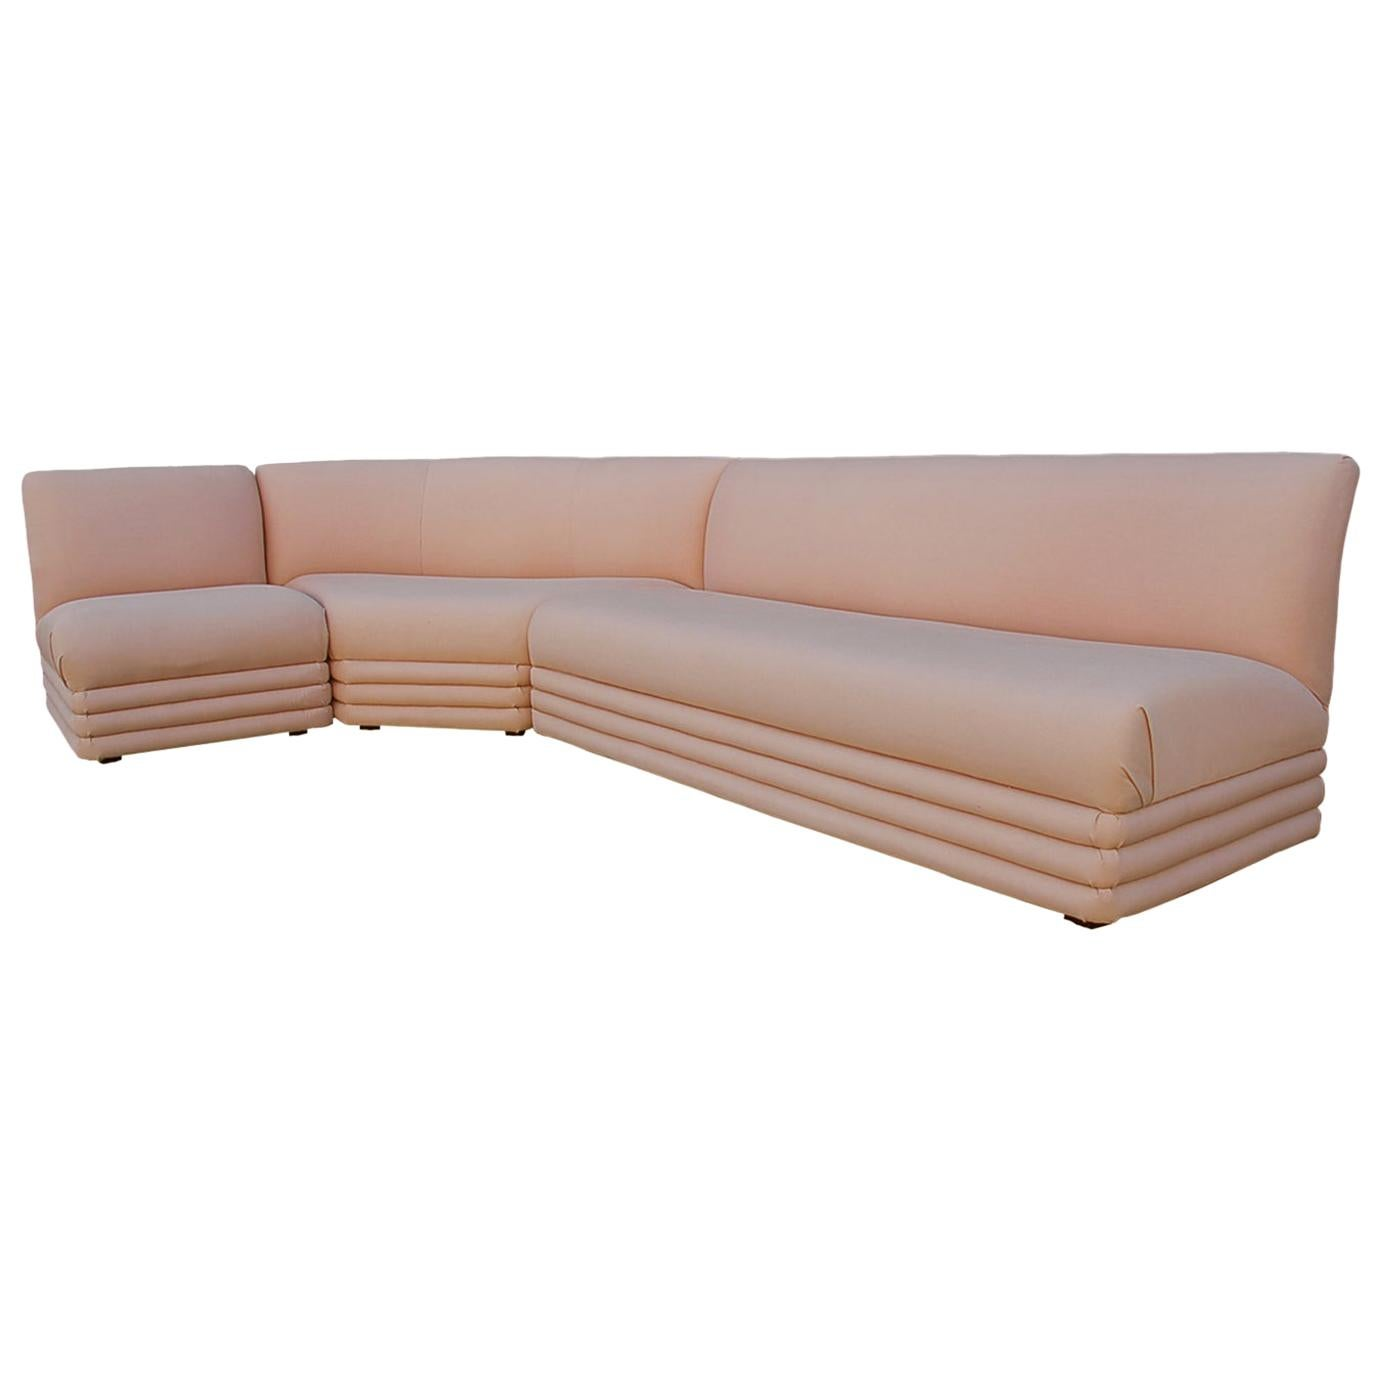 Mid-Century Modern Curved Sectional Sofa in Pink